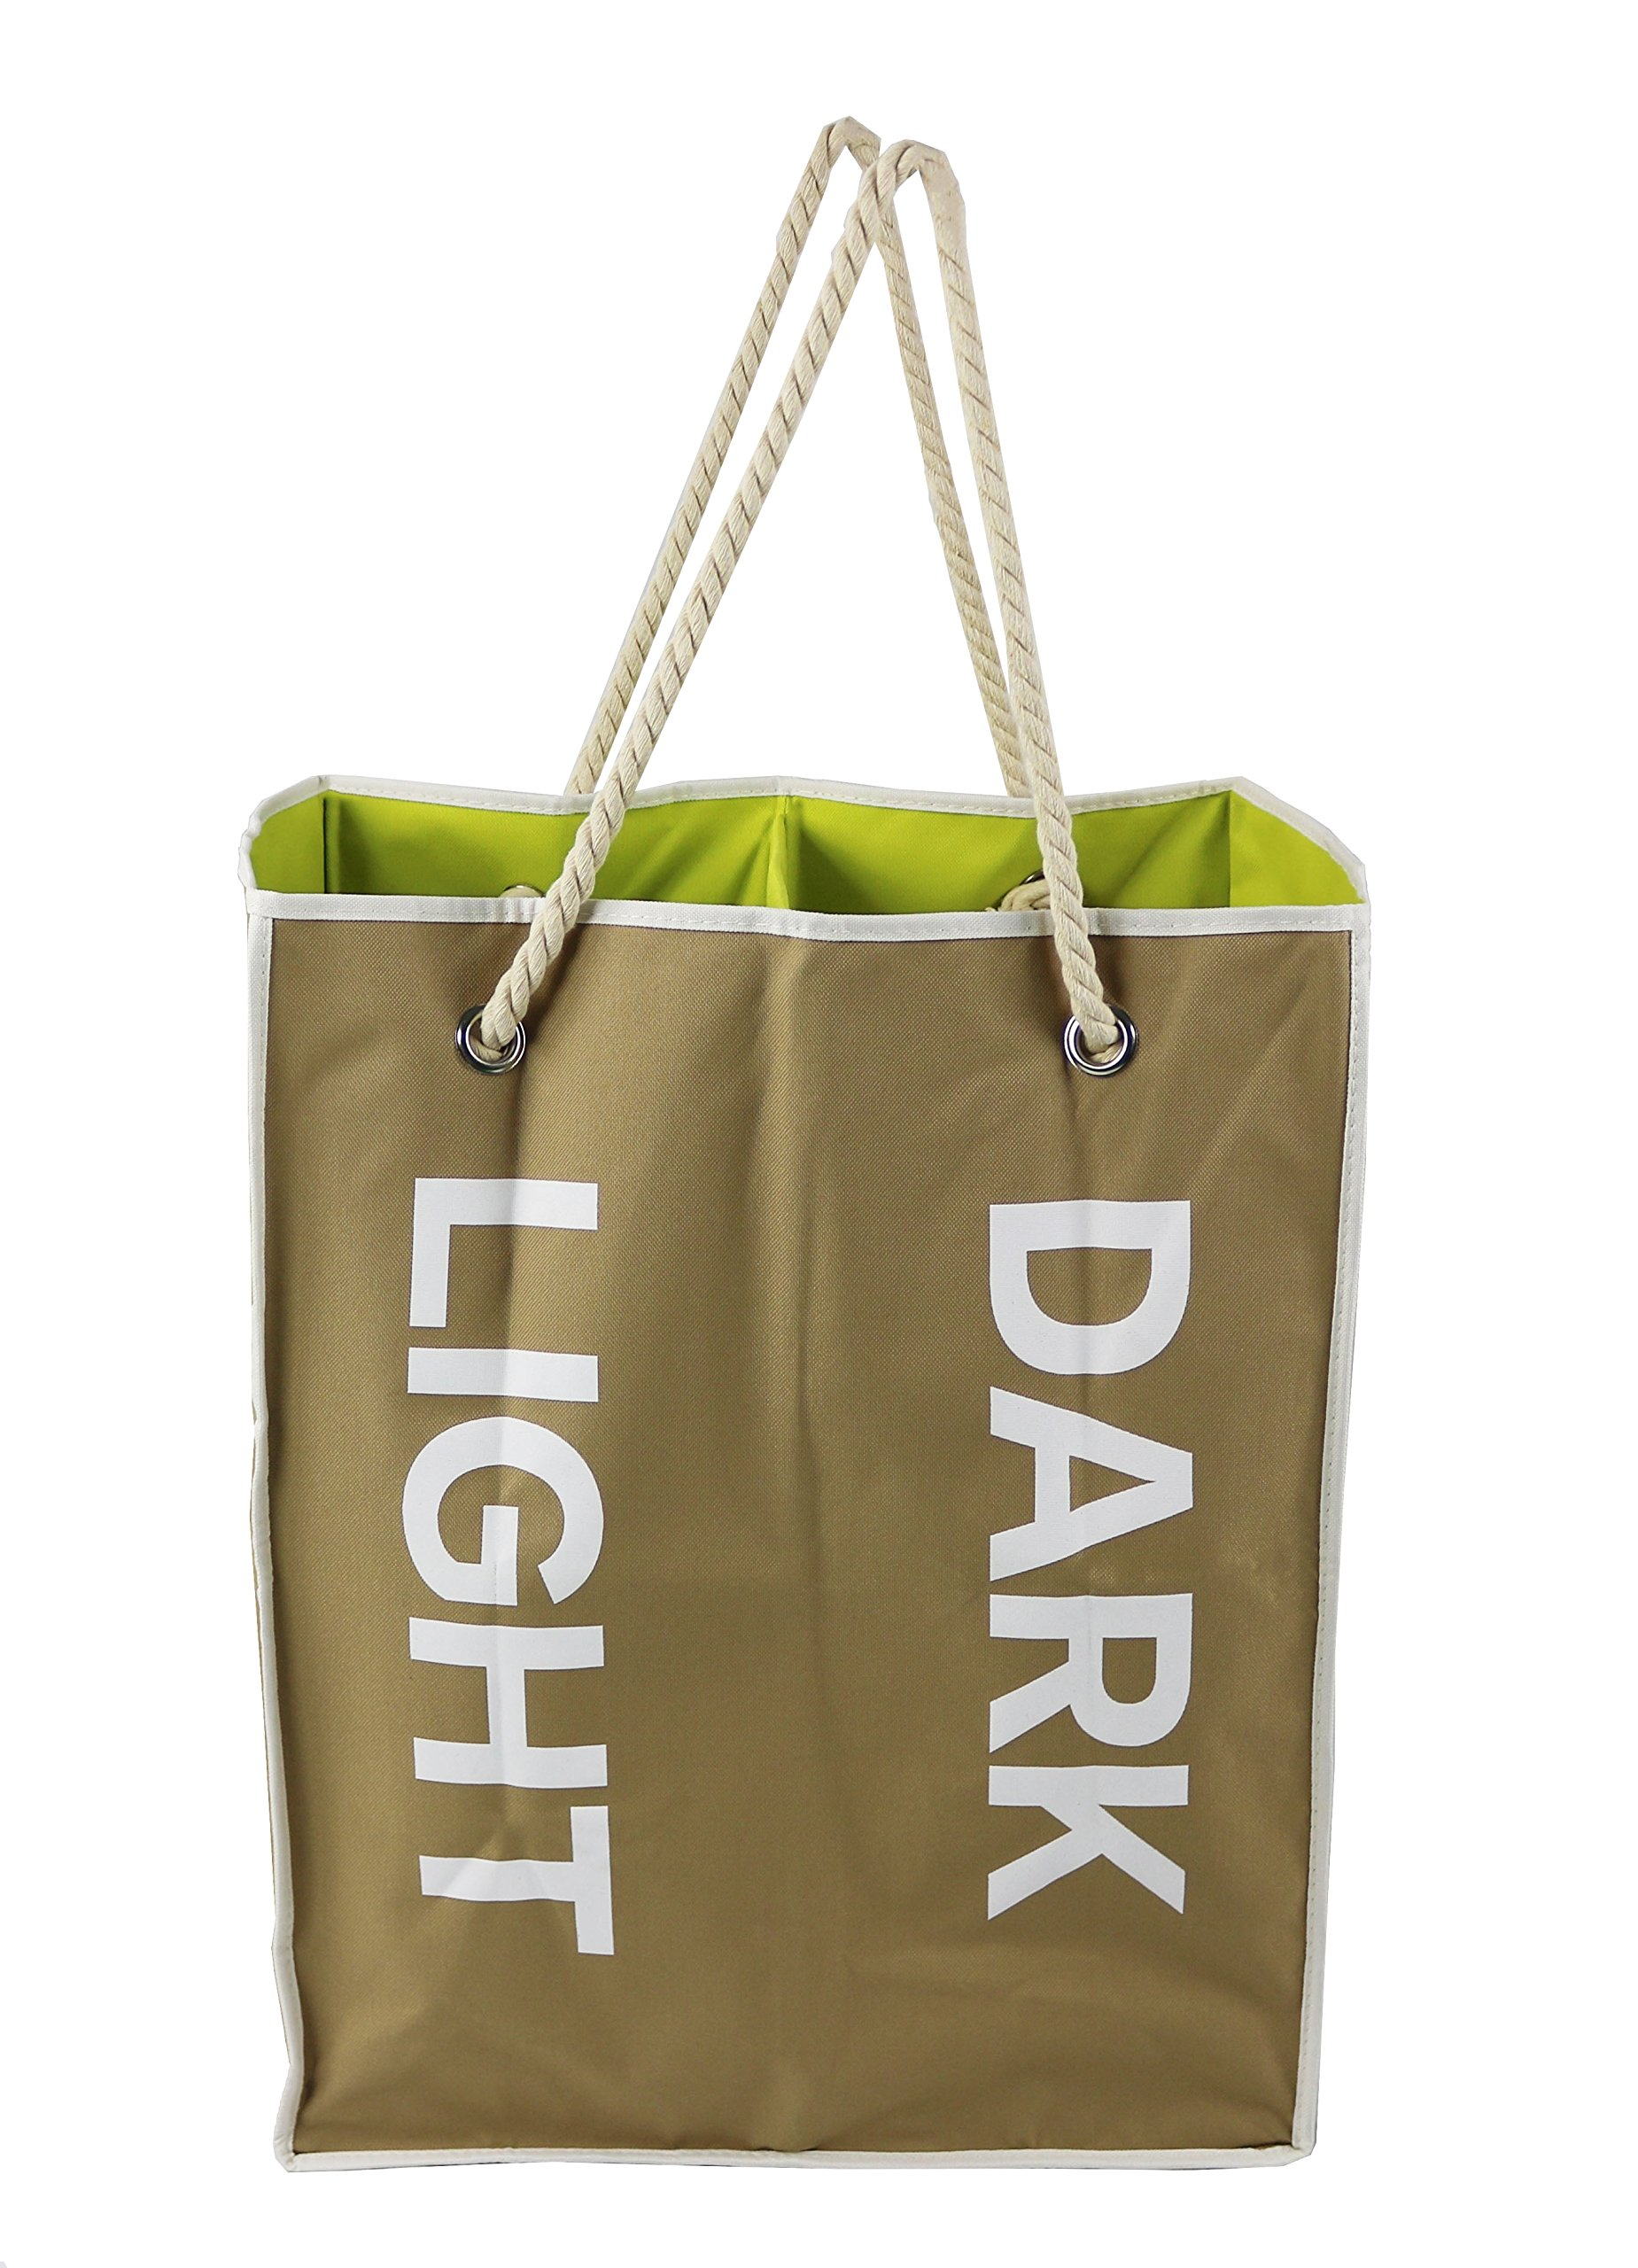 Essentials by Yoshi Foldable Double Laundry Bag/Hamper, Easy to carry, Heavy Duty, Durable, Compact (Beige)